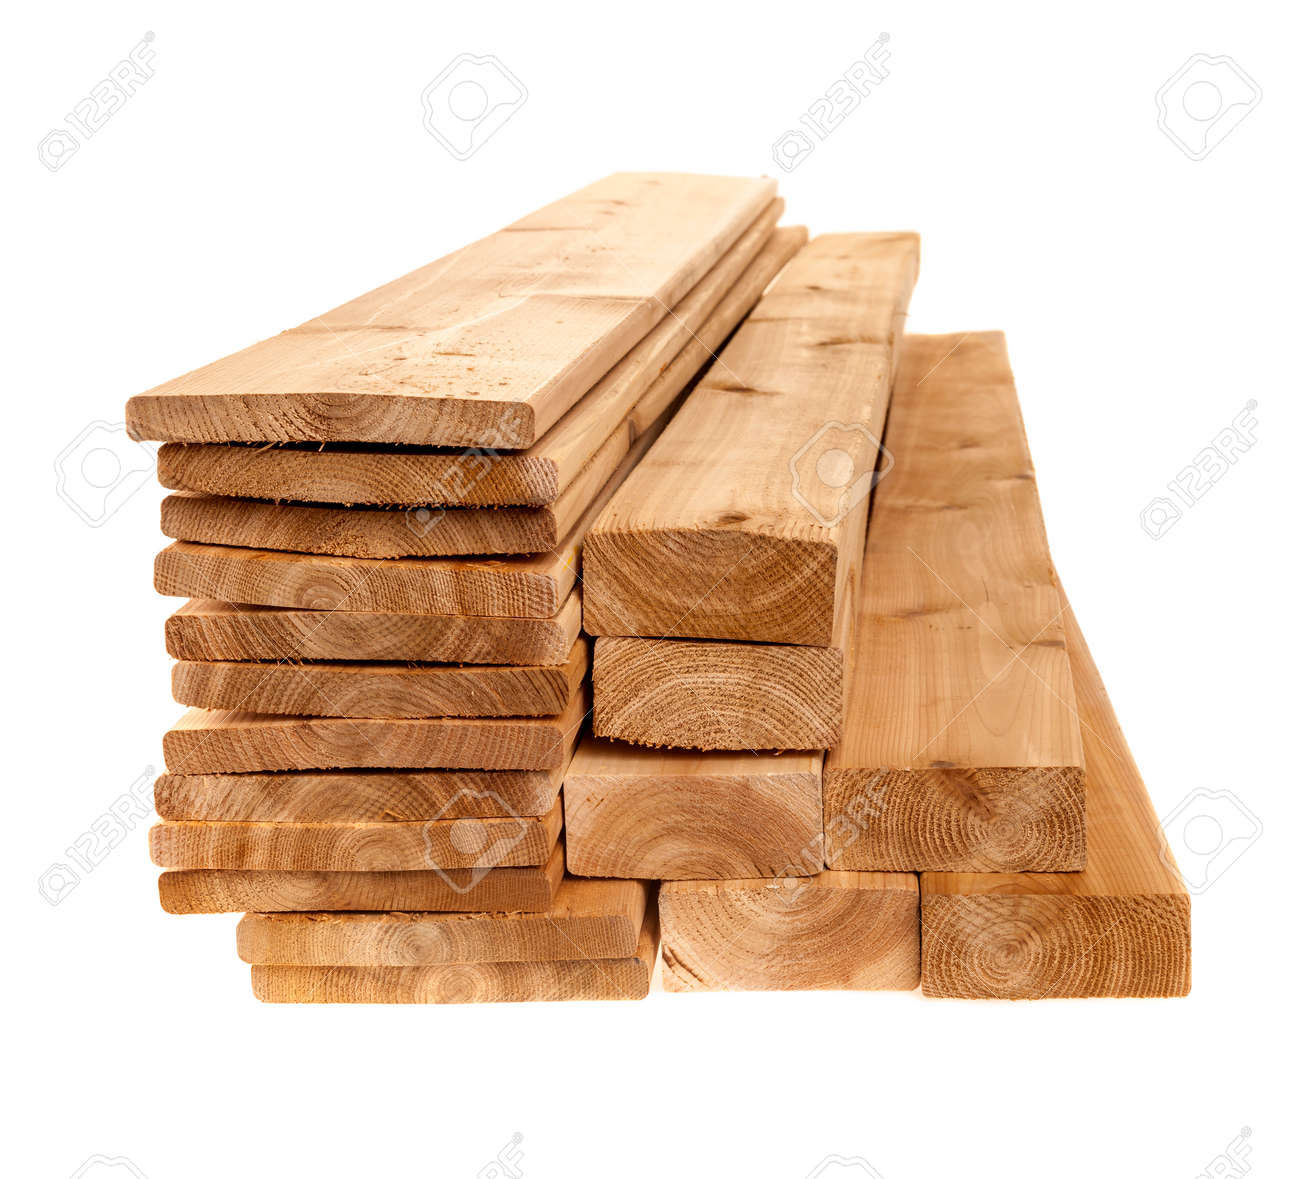 Various sizes of wooden cedar boards isolated on white background - 29611425